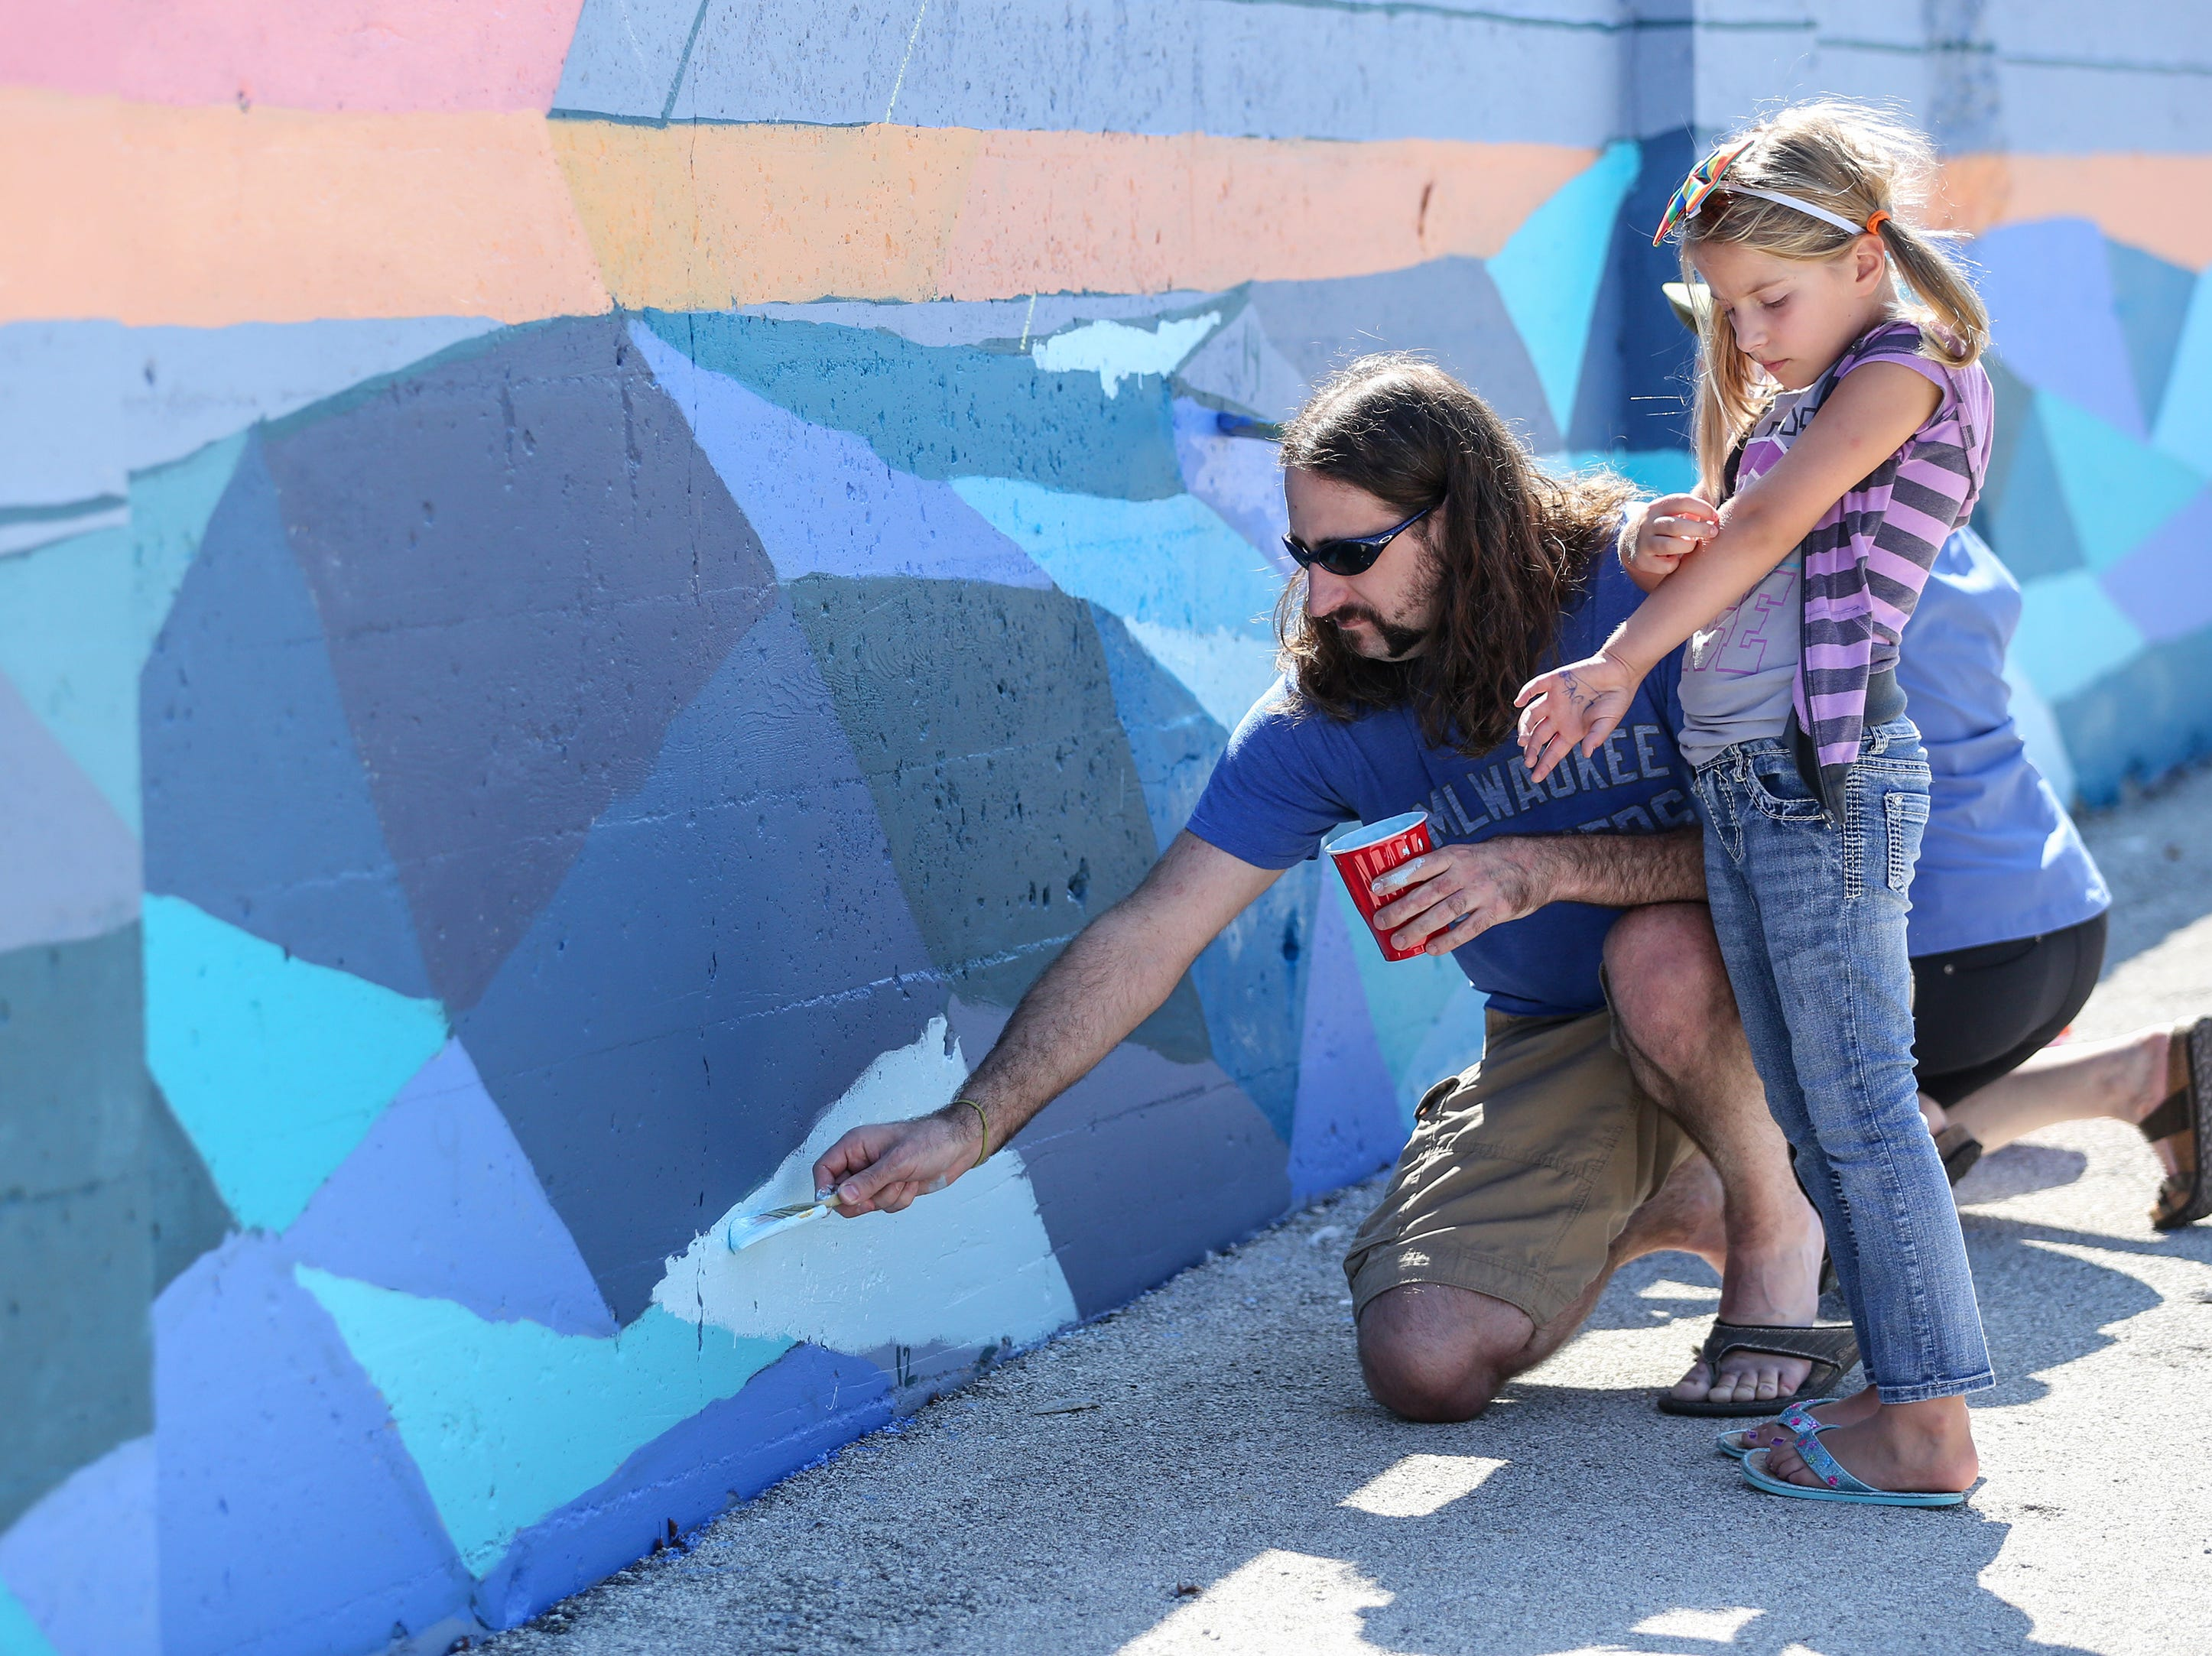 Brian his daughter Paige Mittnacht work on the public mural project during Art Slam Saturday, September 15, 2018, in Manitowoc, Wis. Josh Clark/USA TODAY NETWORK-Wisconsin